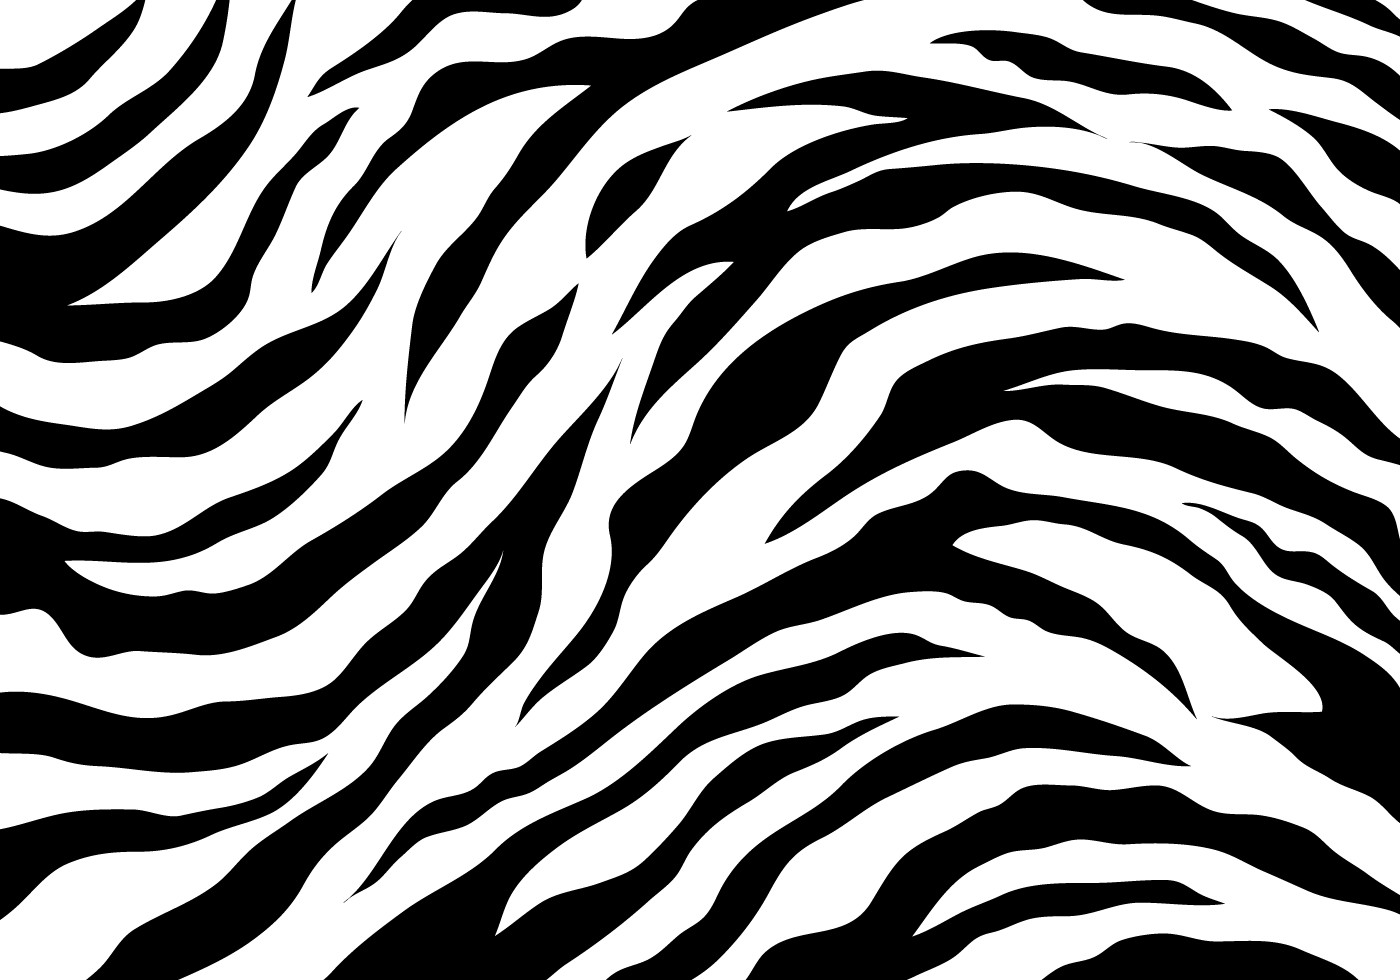 Tiger Stripe Stencil Printable White Tiger Stripes Download Free Vector Art Stock